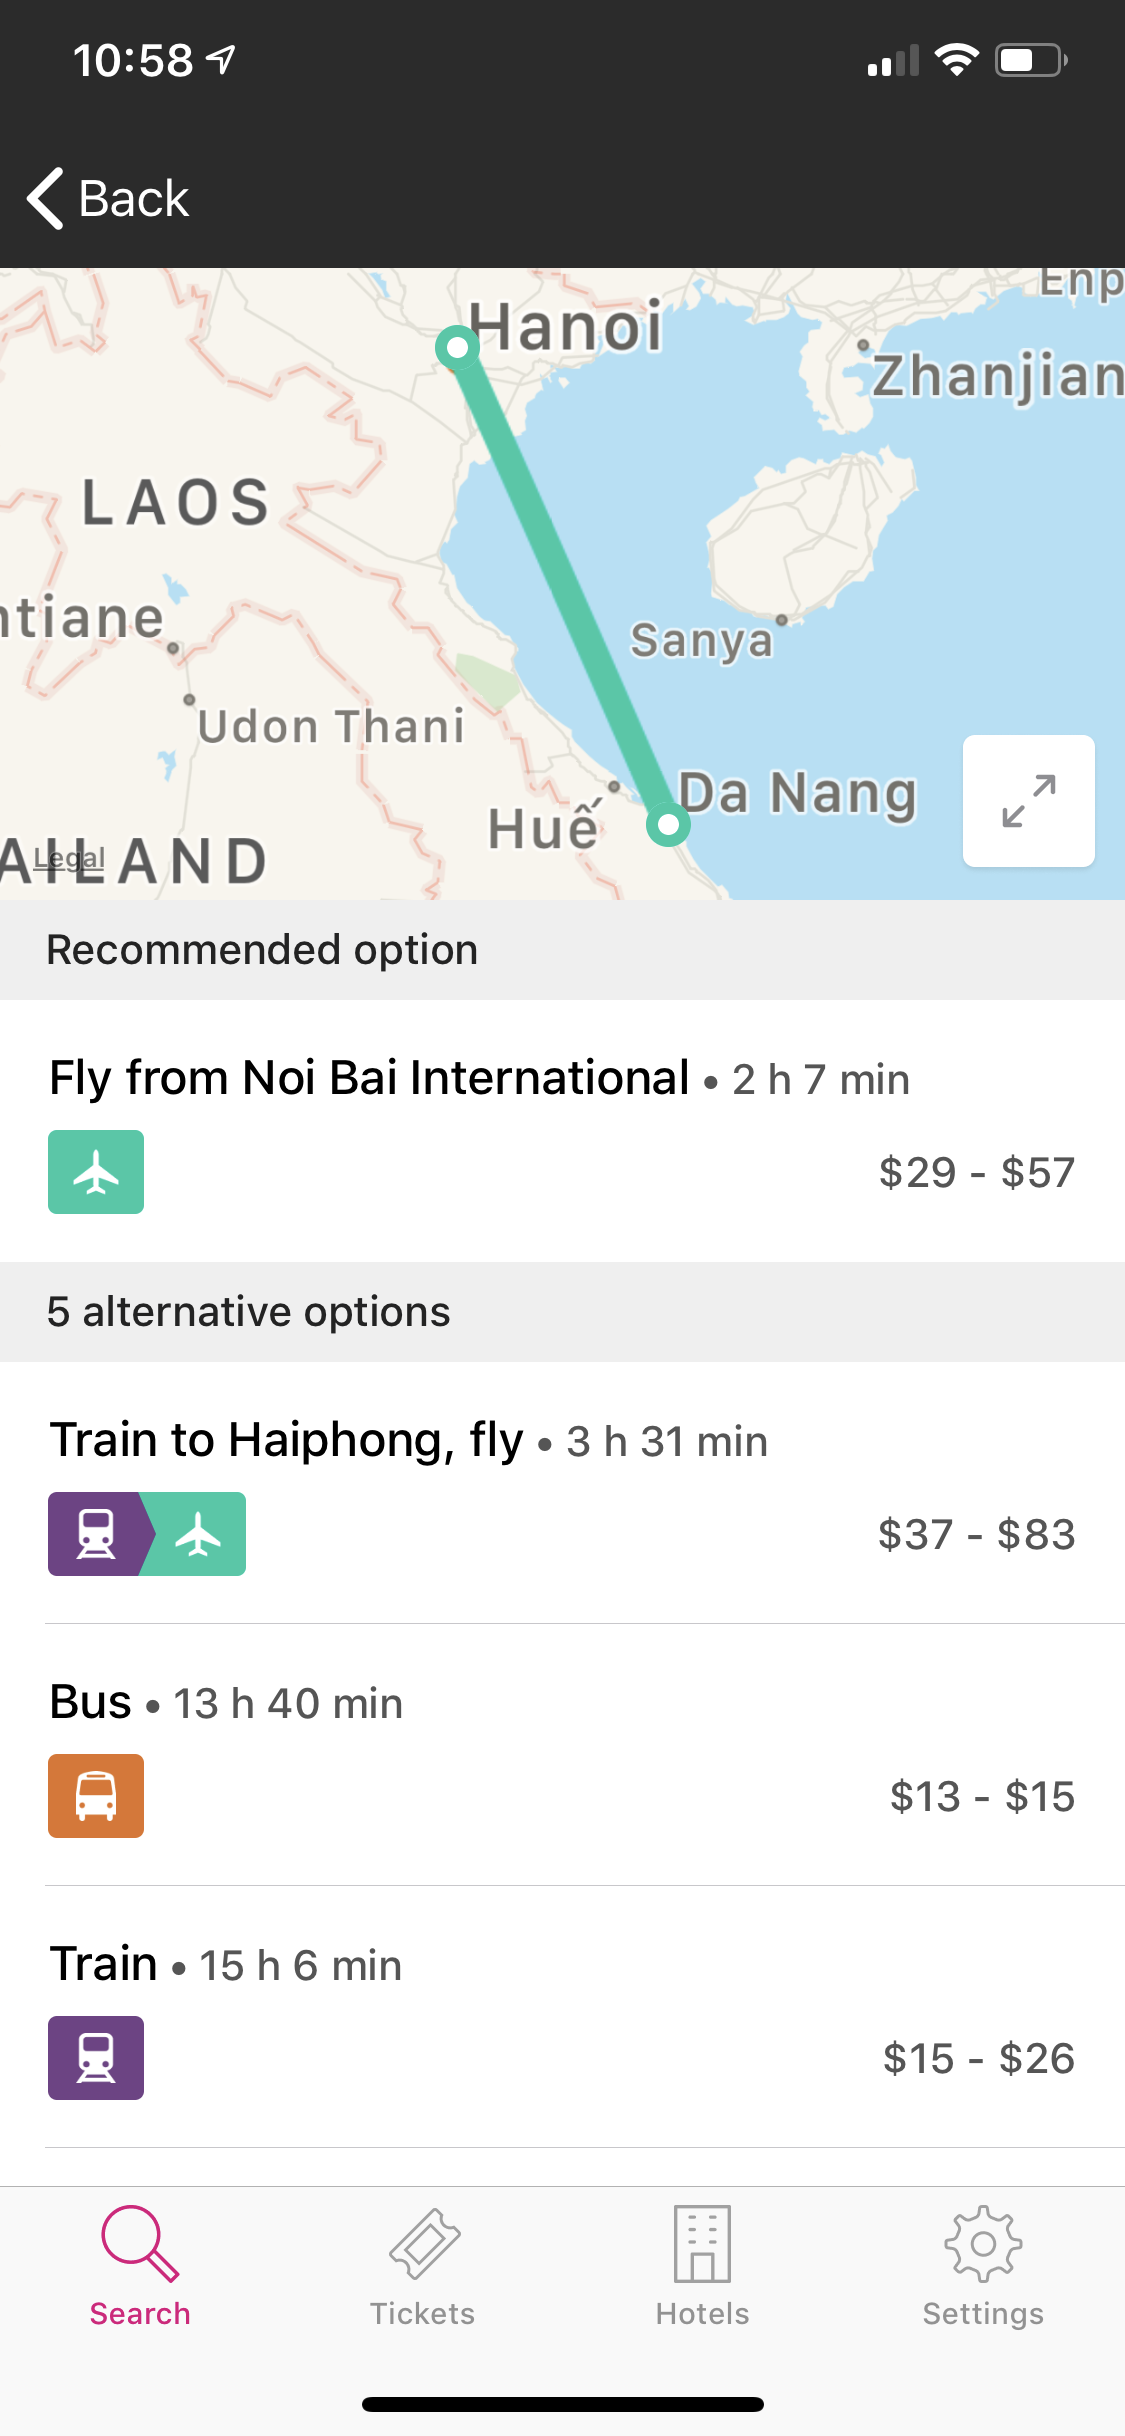 Here's an example of another search, this time from Hanoi to Da Nang.